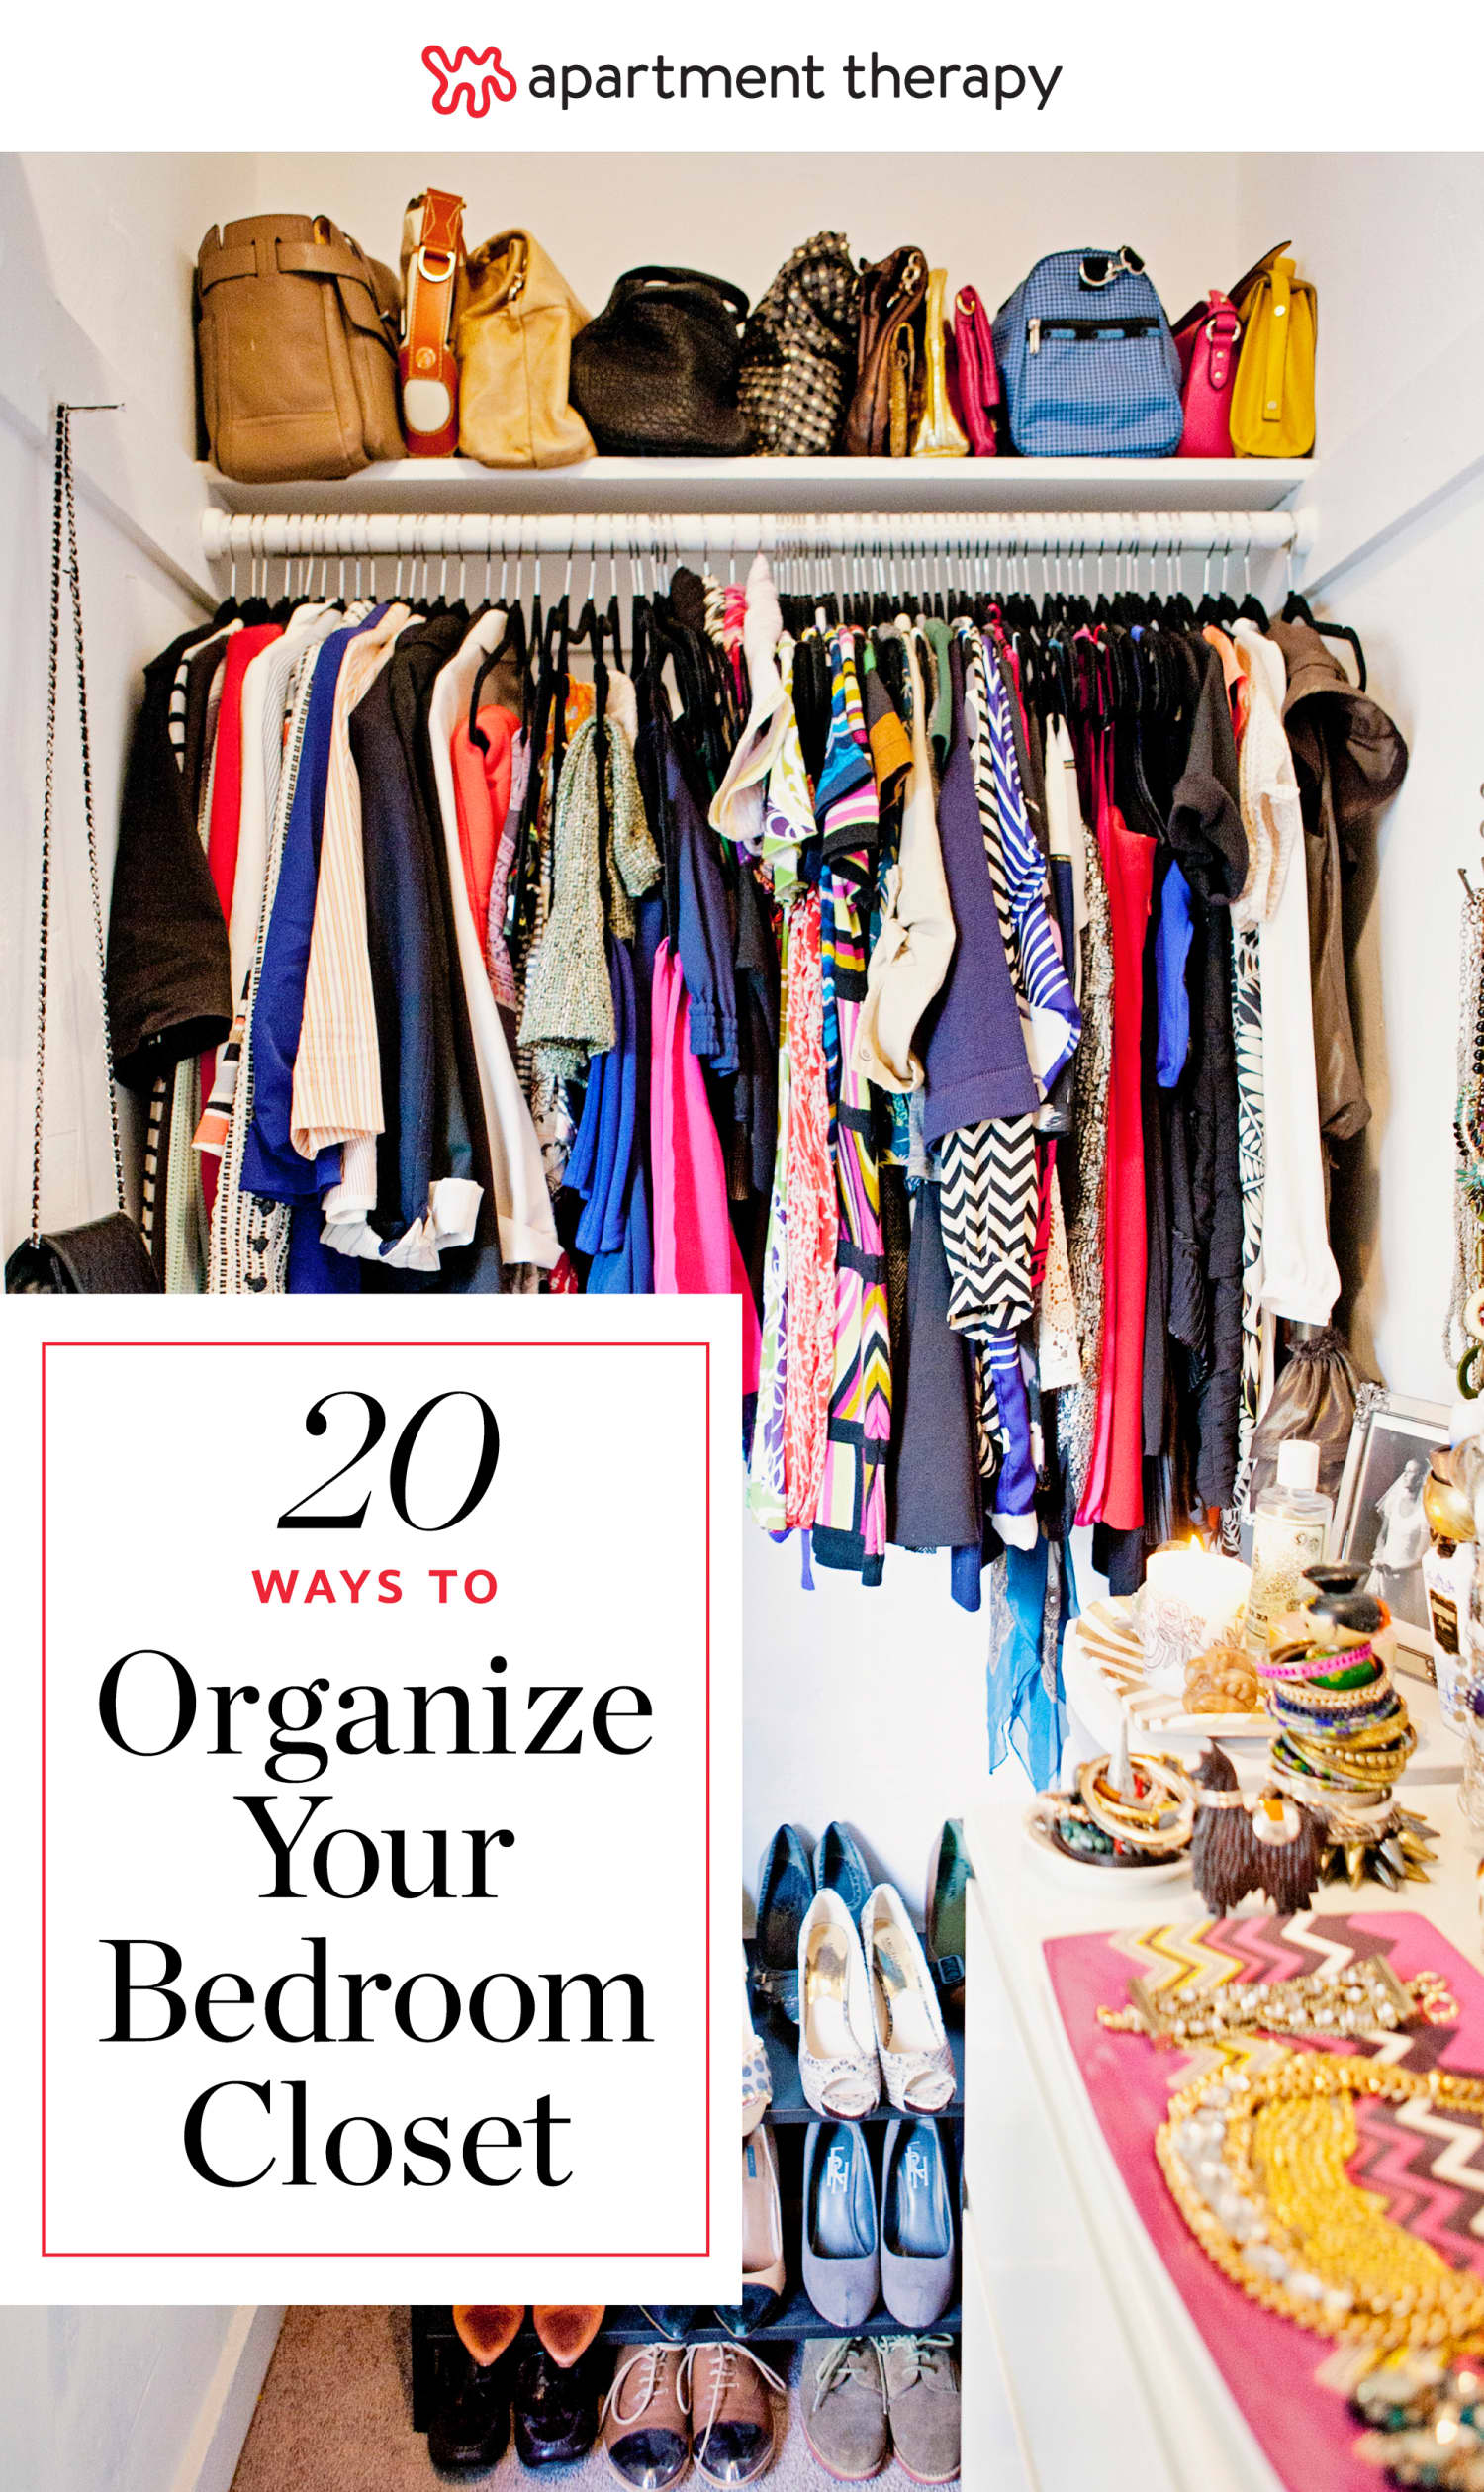 20 Smart Ways to Organize Your Bedroom Closet